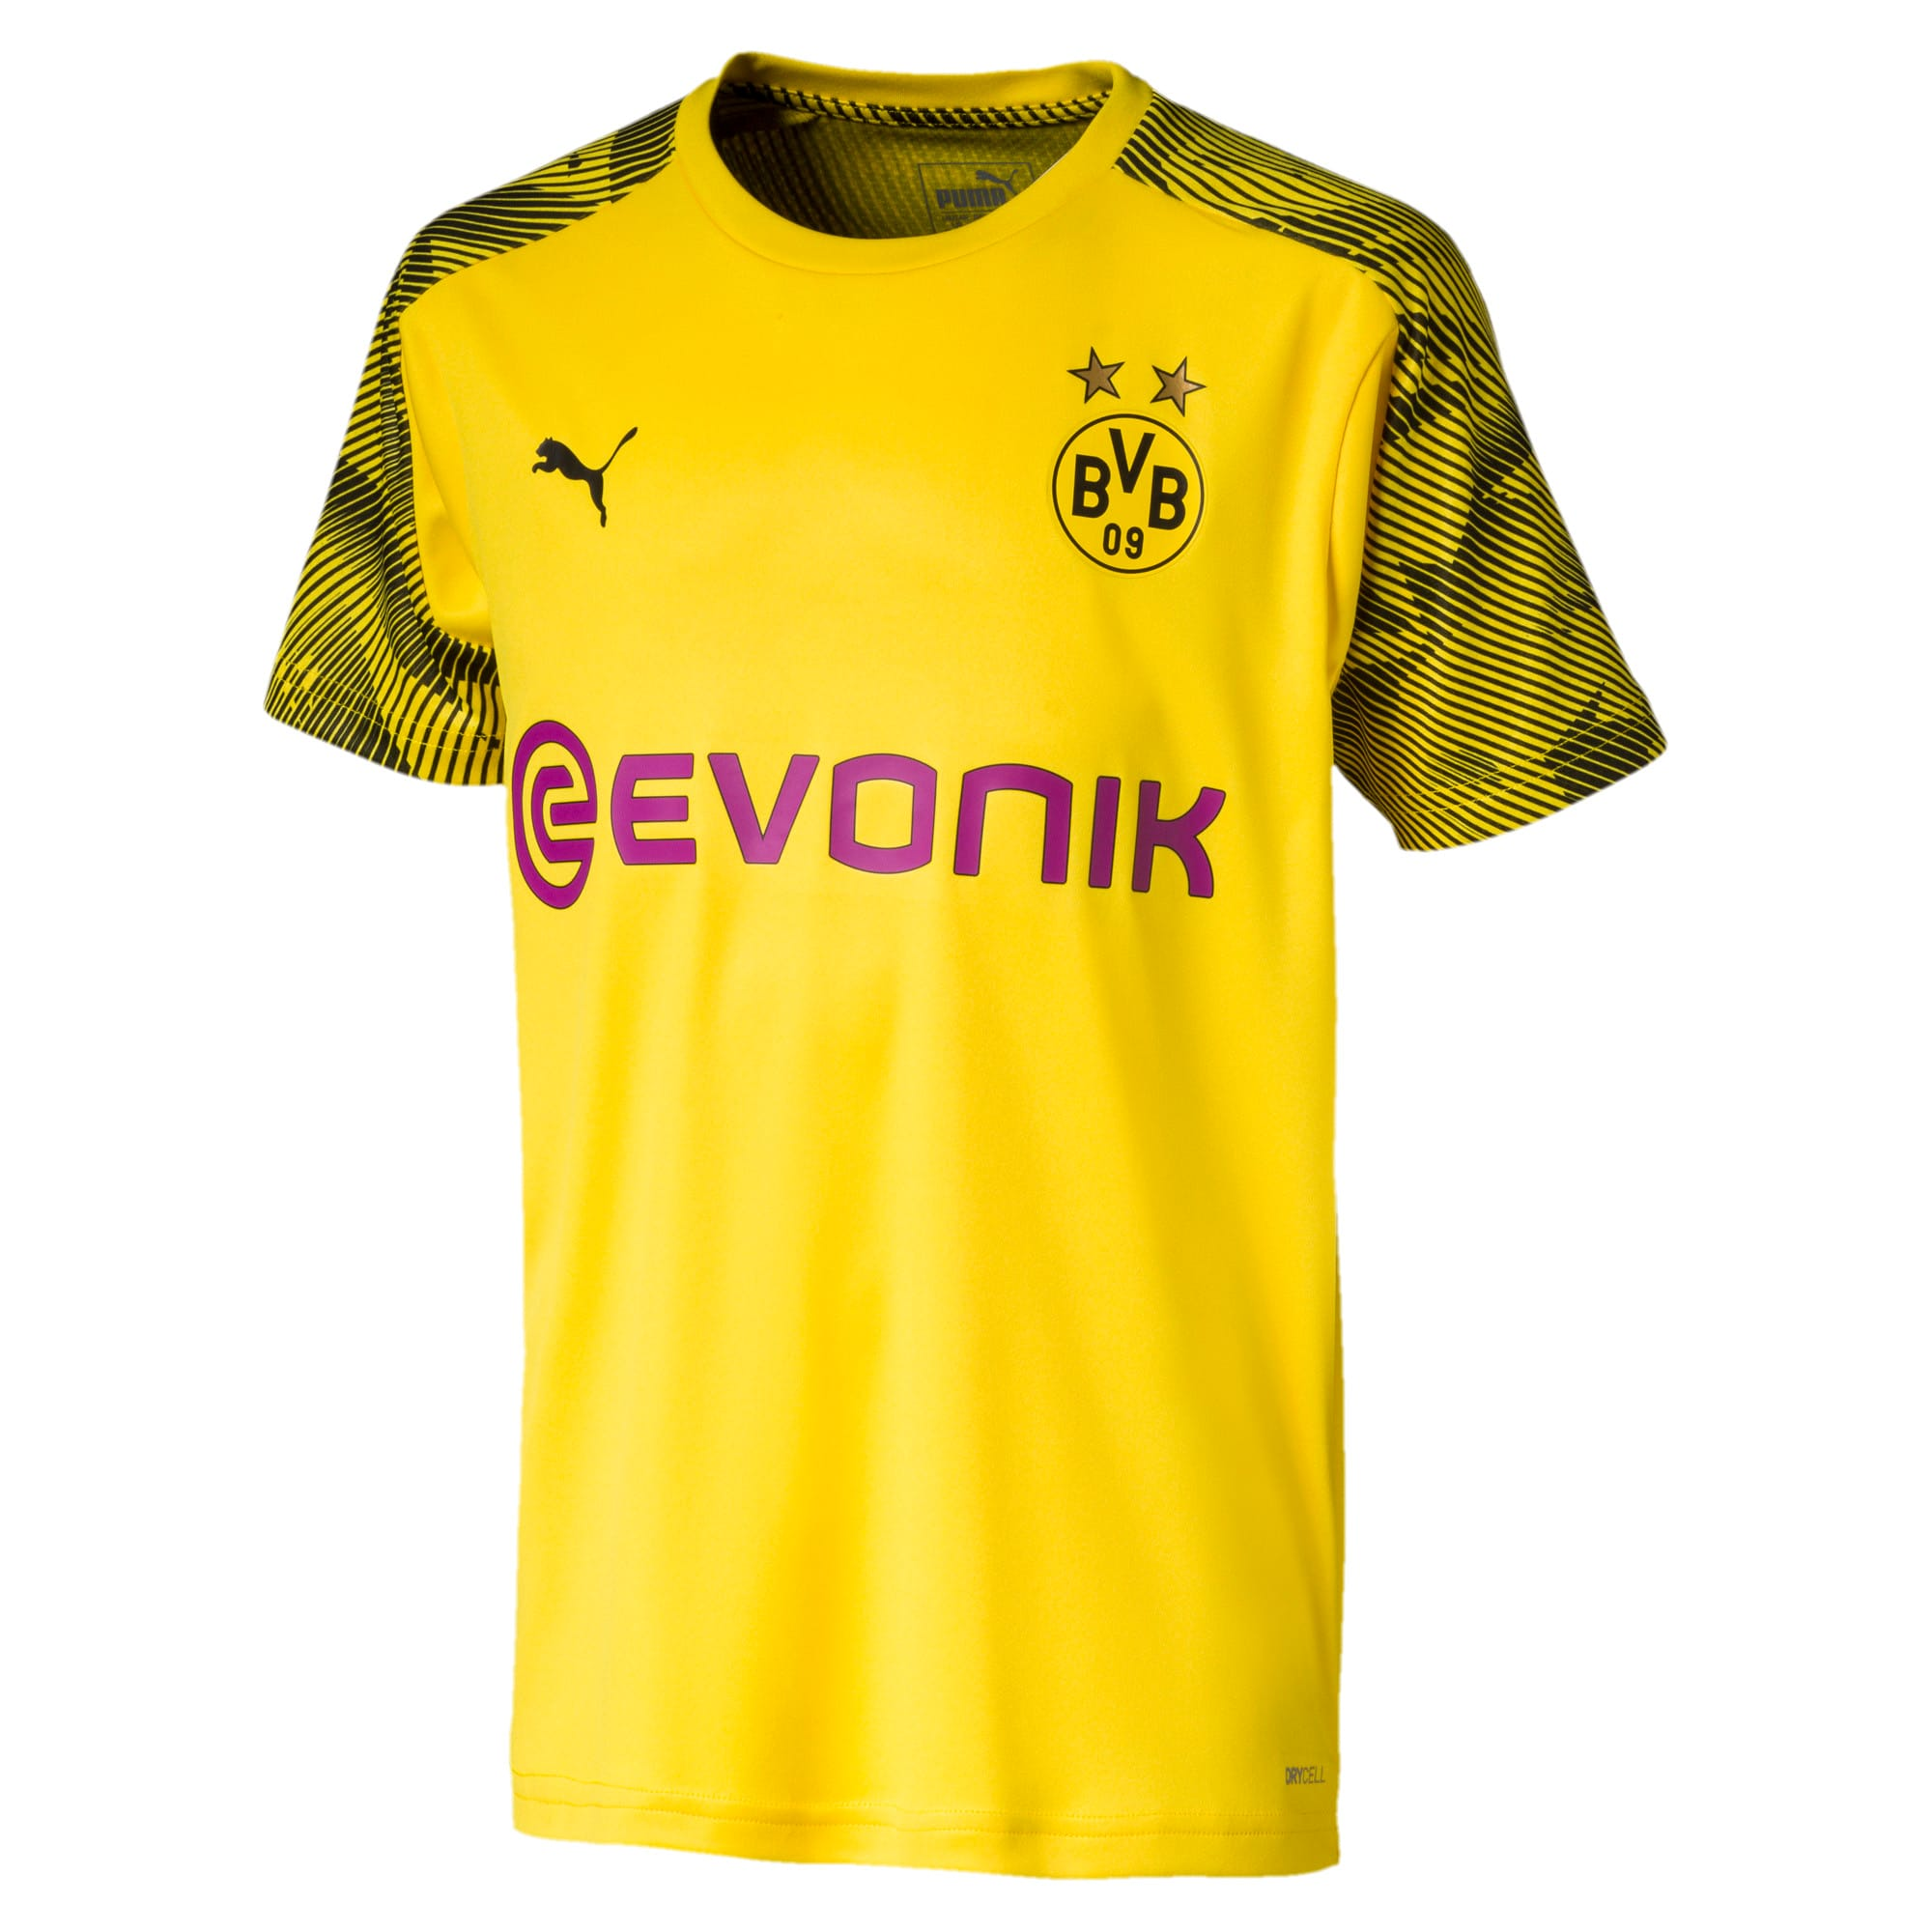 Thumbnail 1 of BVB Kids' Training Jersey, Cyber Yellow-Puma Black, medium